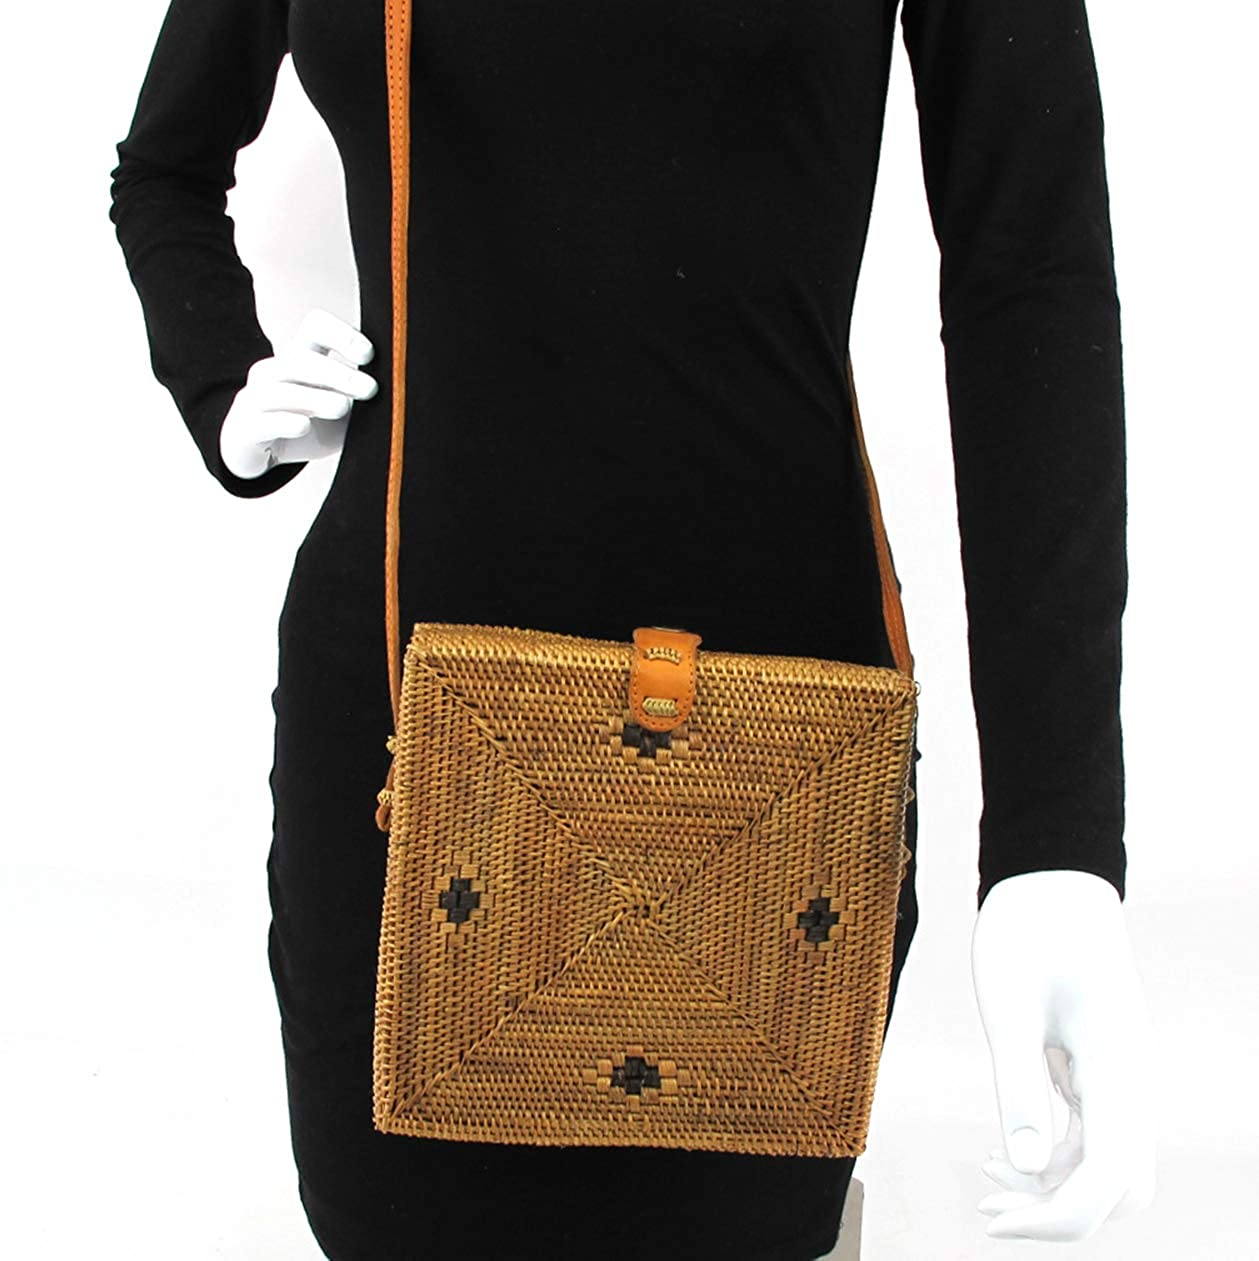 Square and Leather Clip Woven//w Genuine-Leather Strap Summer Beach Handbag